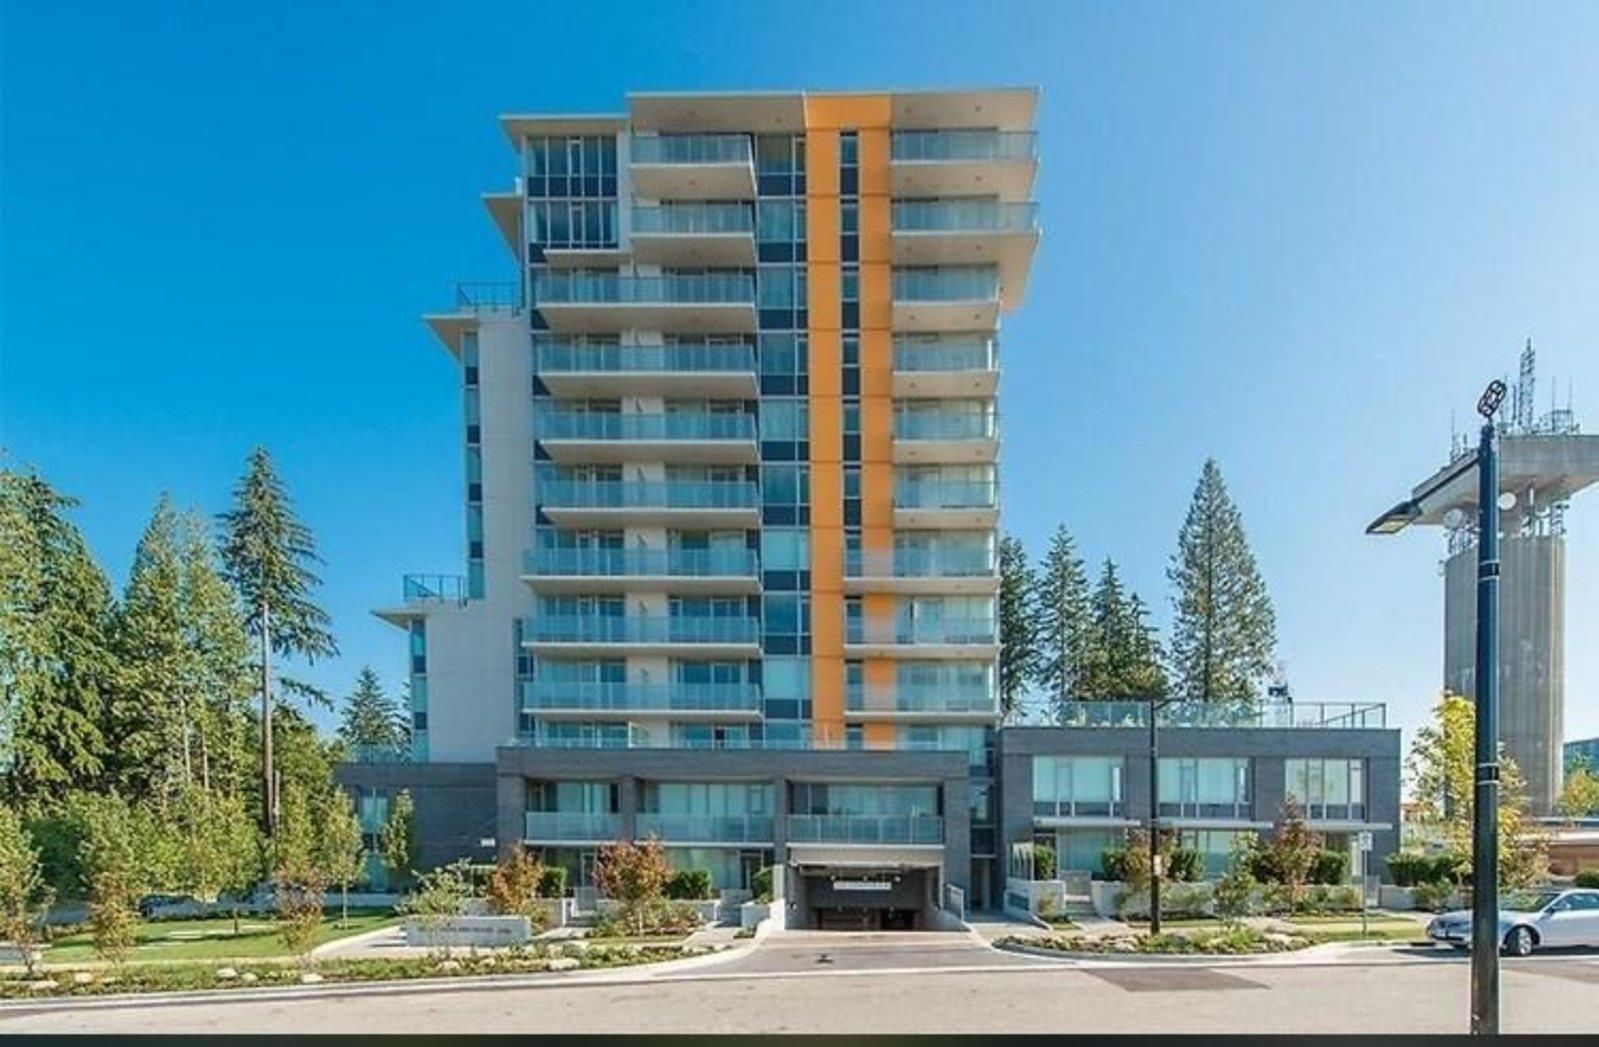 """Main Photo: 303 9025 HIGHLAND Court in Burnaby: Simon Fraser Univer. Condo for sale in """"Highland House"""" (Burnaby North)  : MLS®# R2609041"""